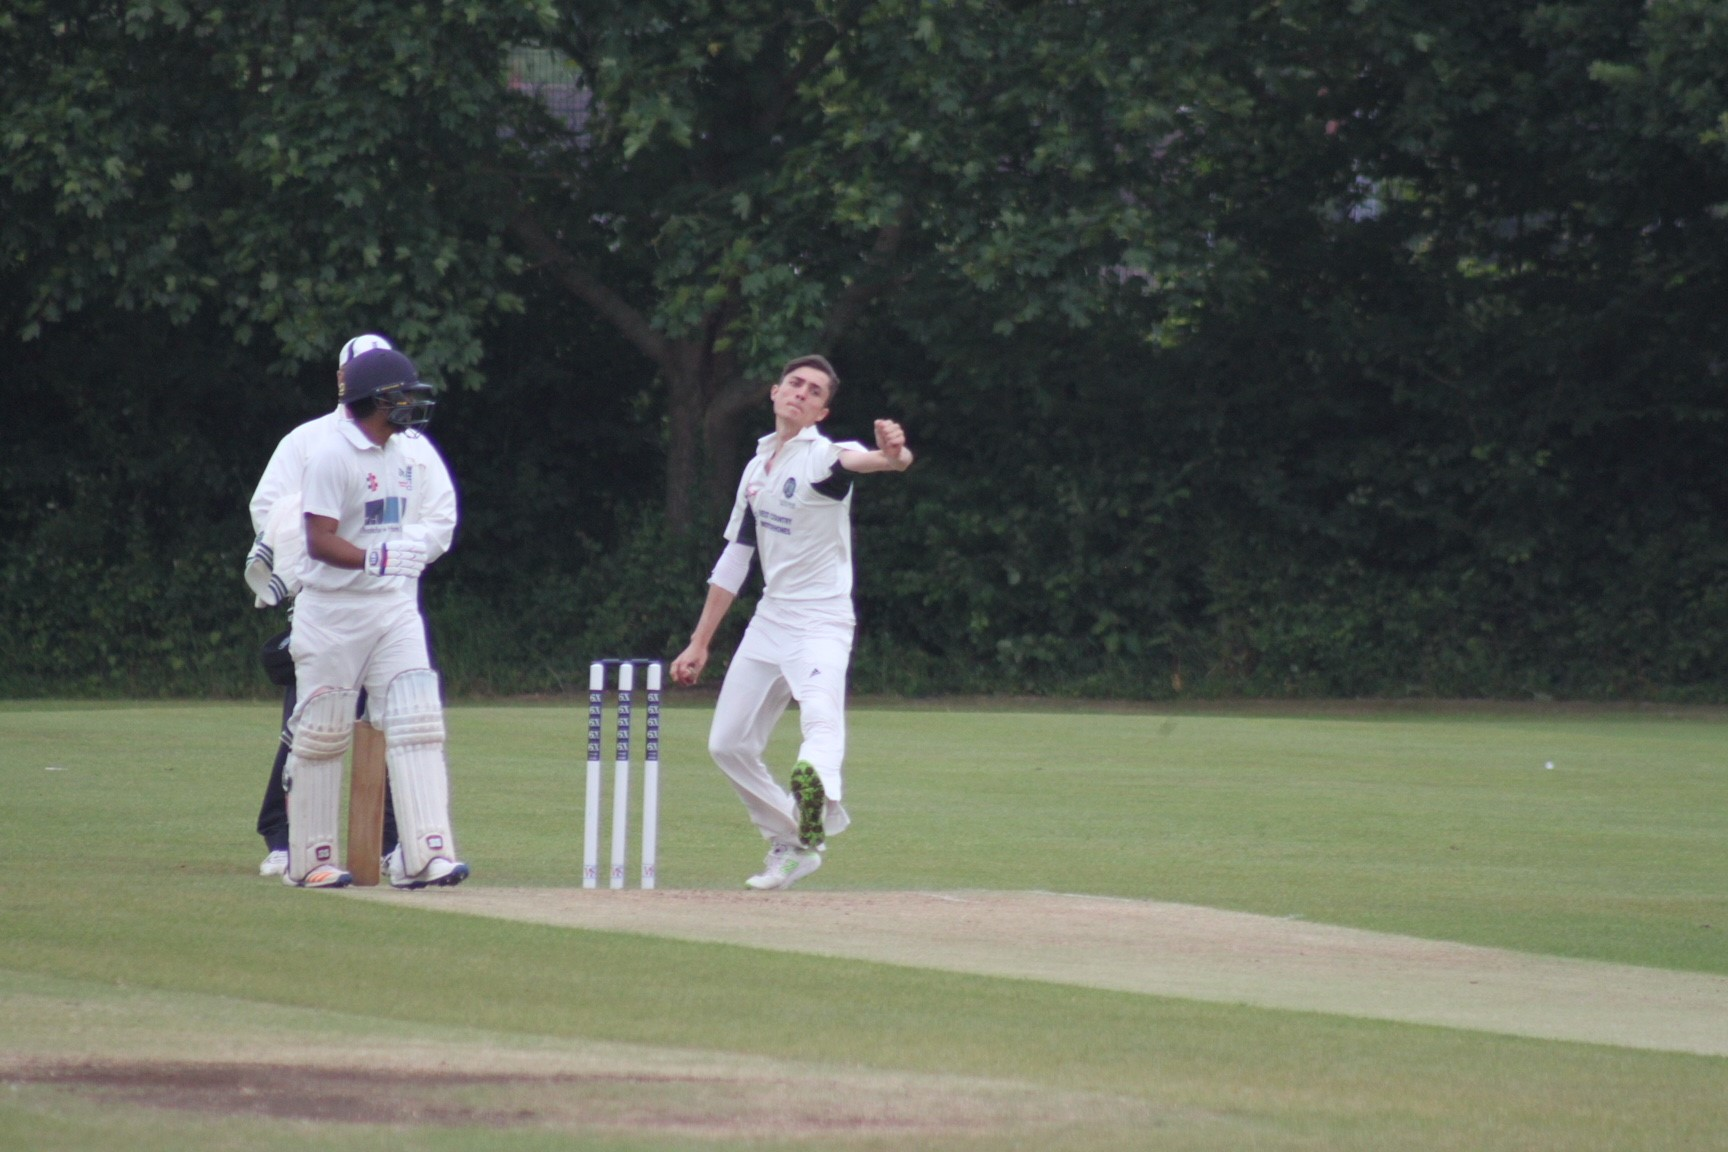 WICKETS: Taunton Deane's Harry Smith took 3-30 against Midsomer Norton. Pic: Lucy Williams